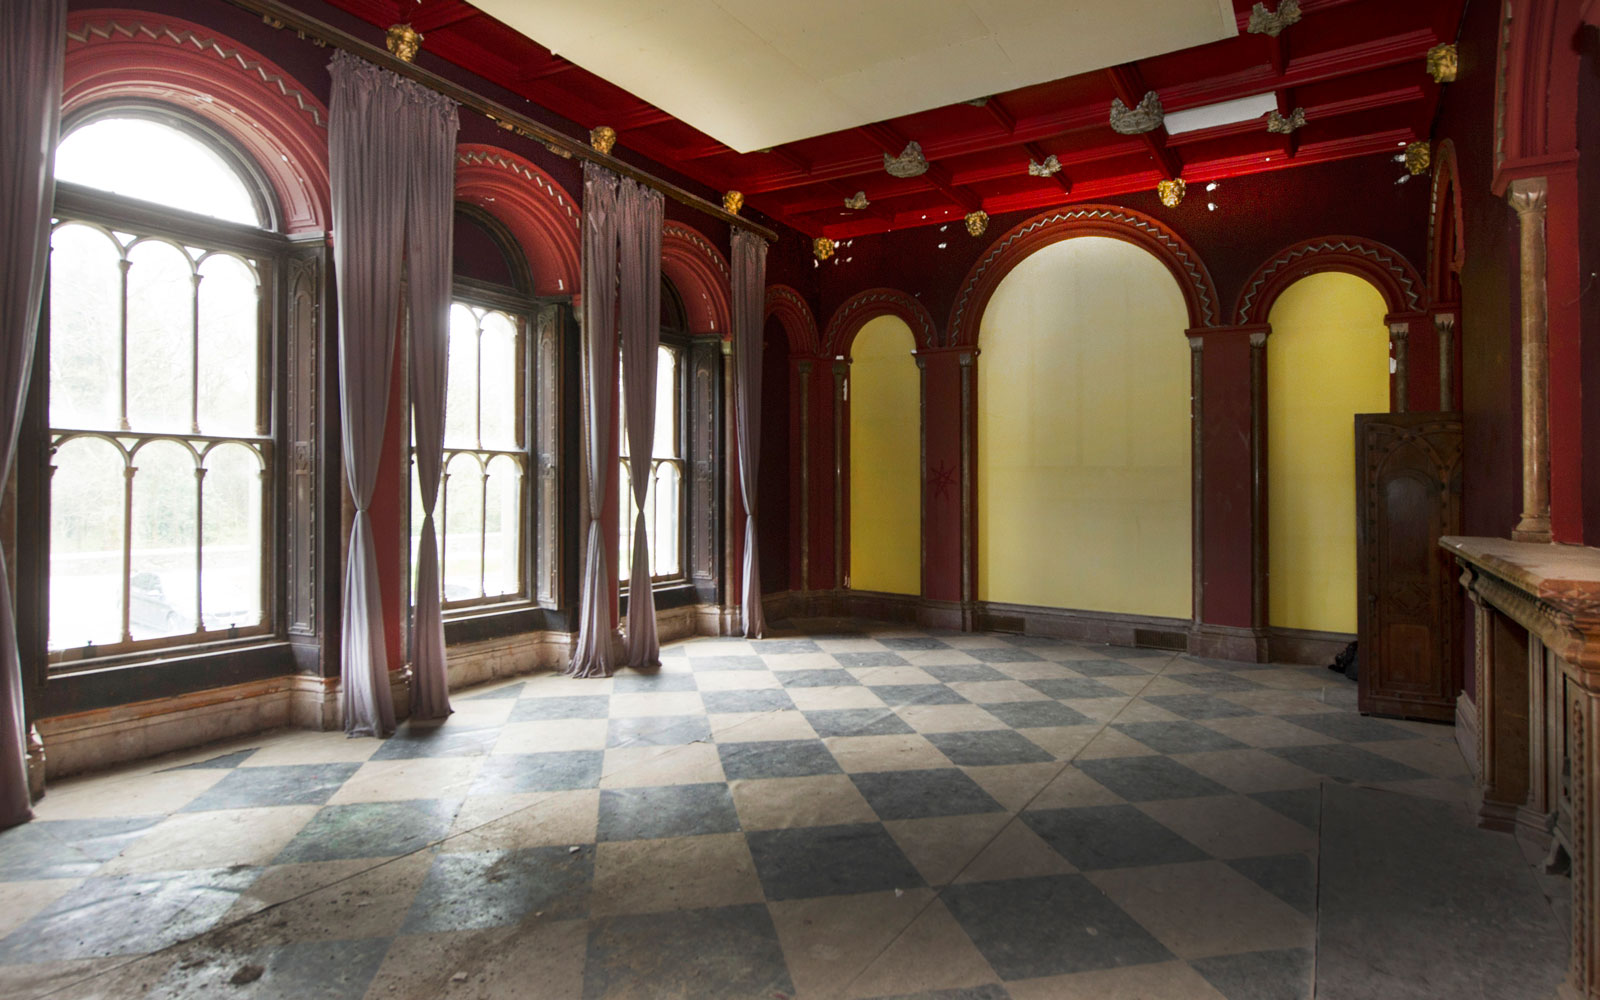 The interiors of Gosford Castle include wide entryways and fireplaces dating to the 1800s.